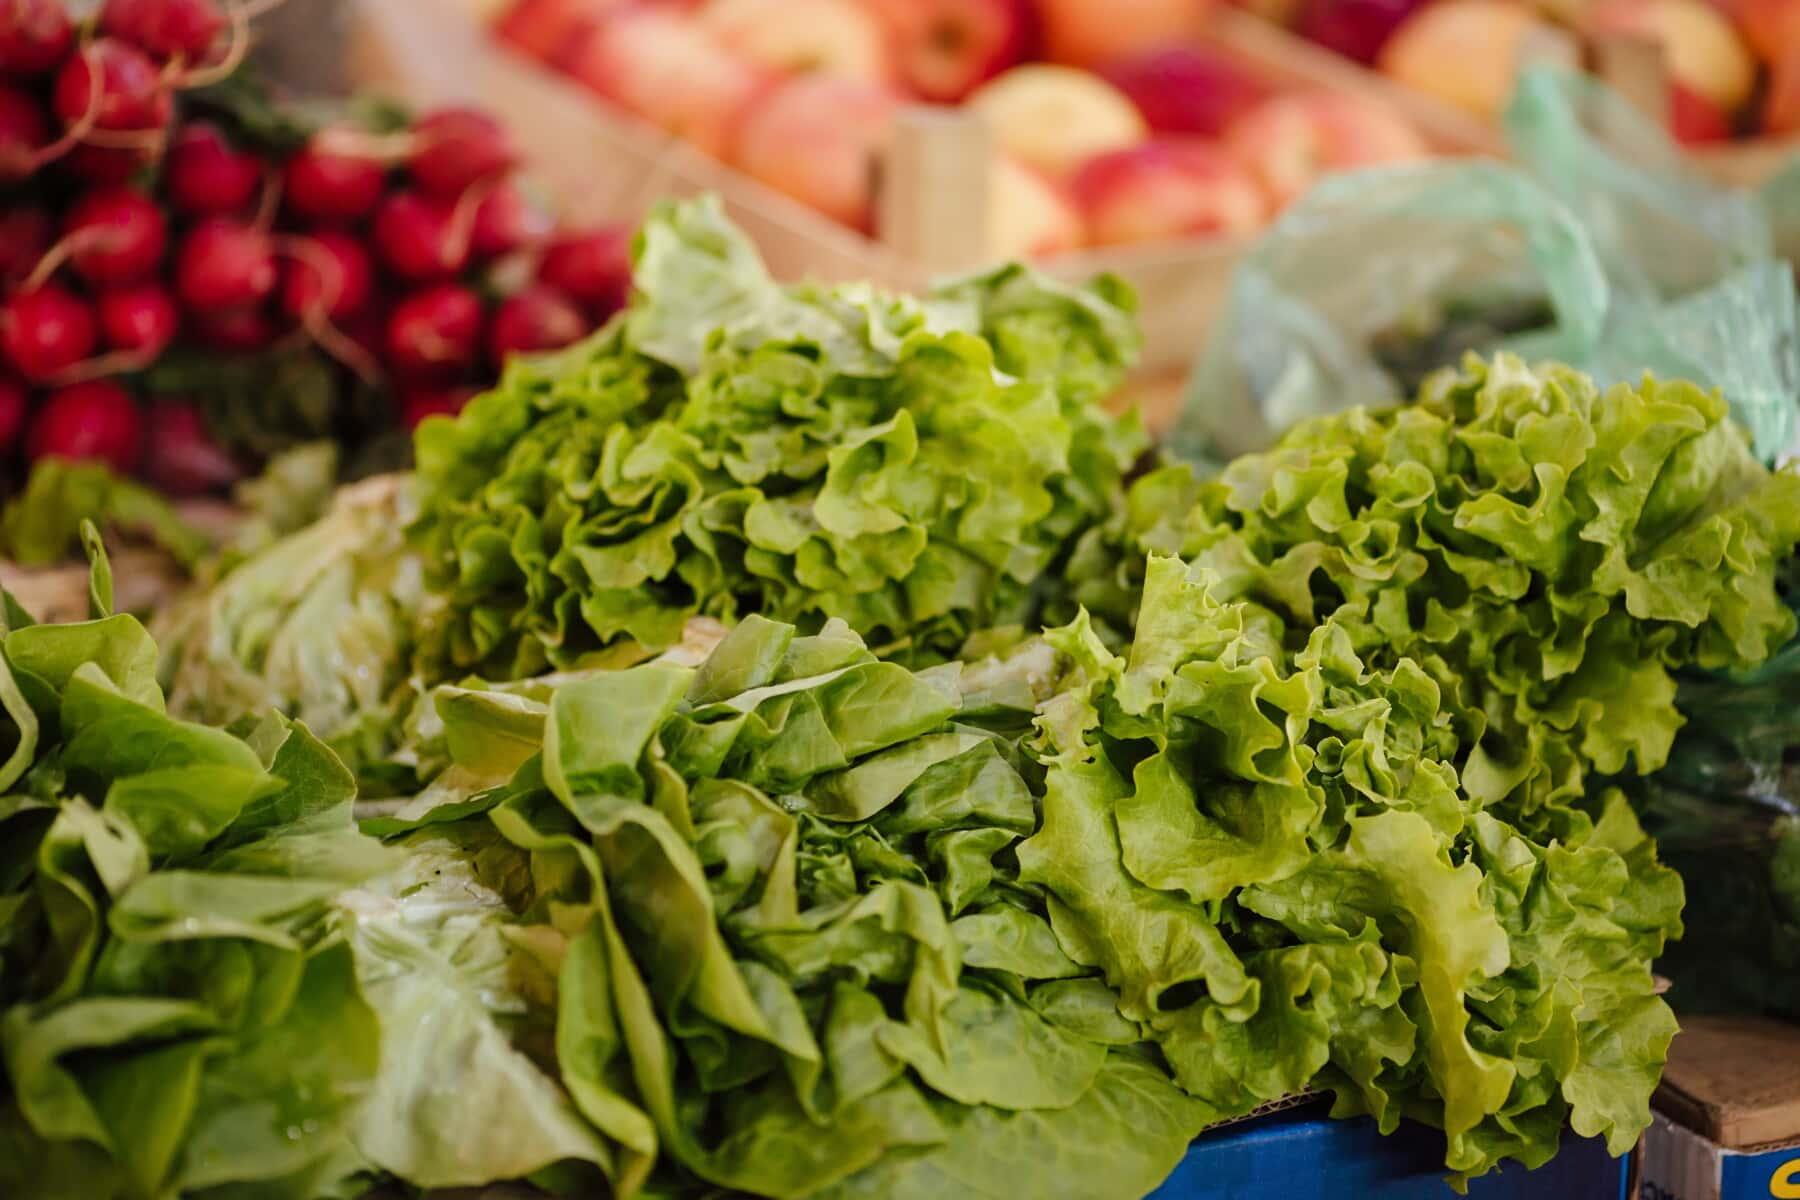 shopping, lettuce, marketplace, green leaves, production, agriculture, farming, food, salad, diet